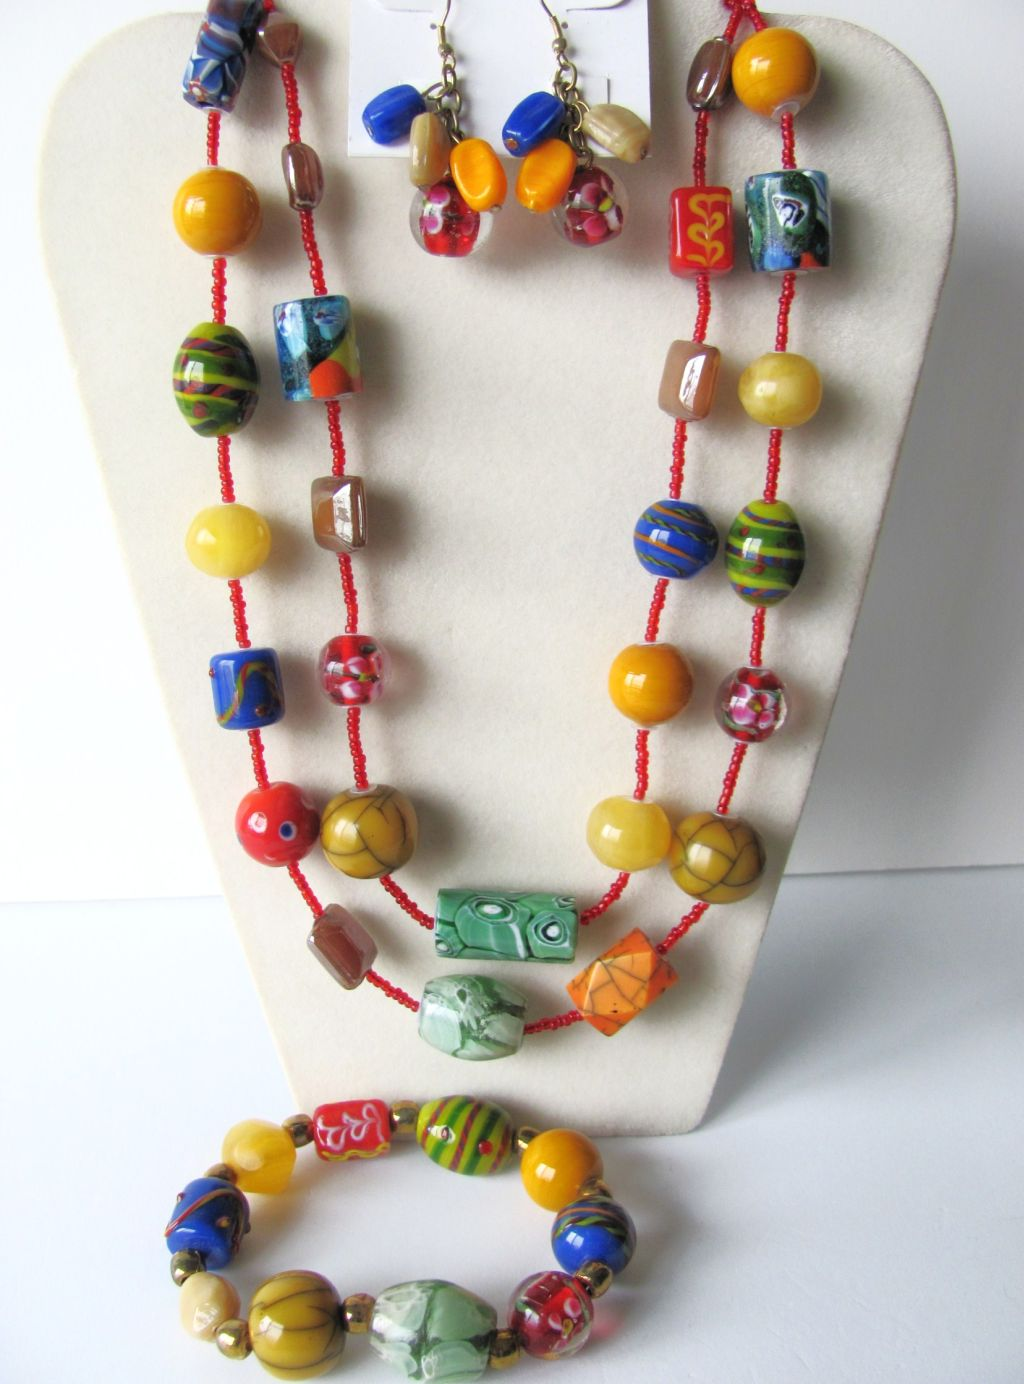 Summer Colors Glass Beads Necklace Bracelet Earrings Jewelry Set